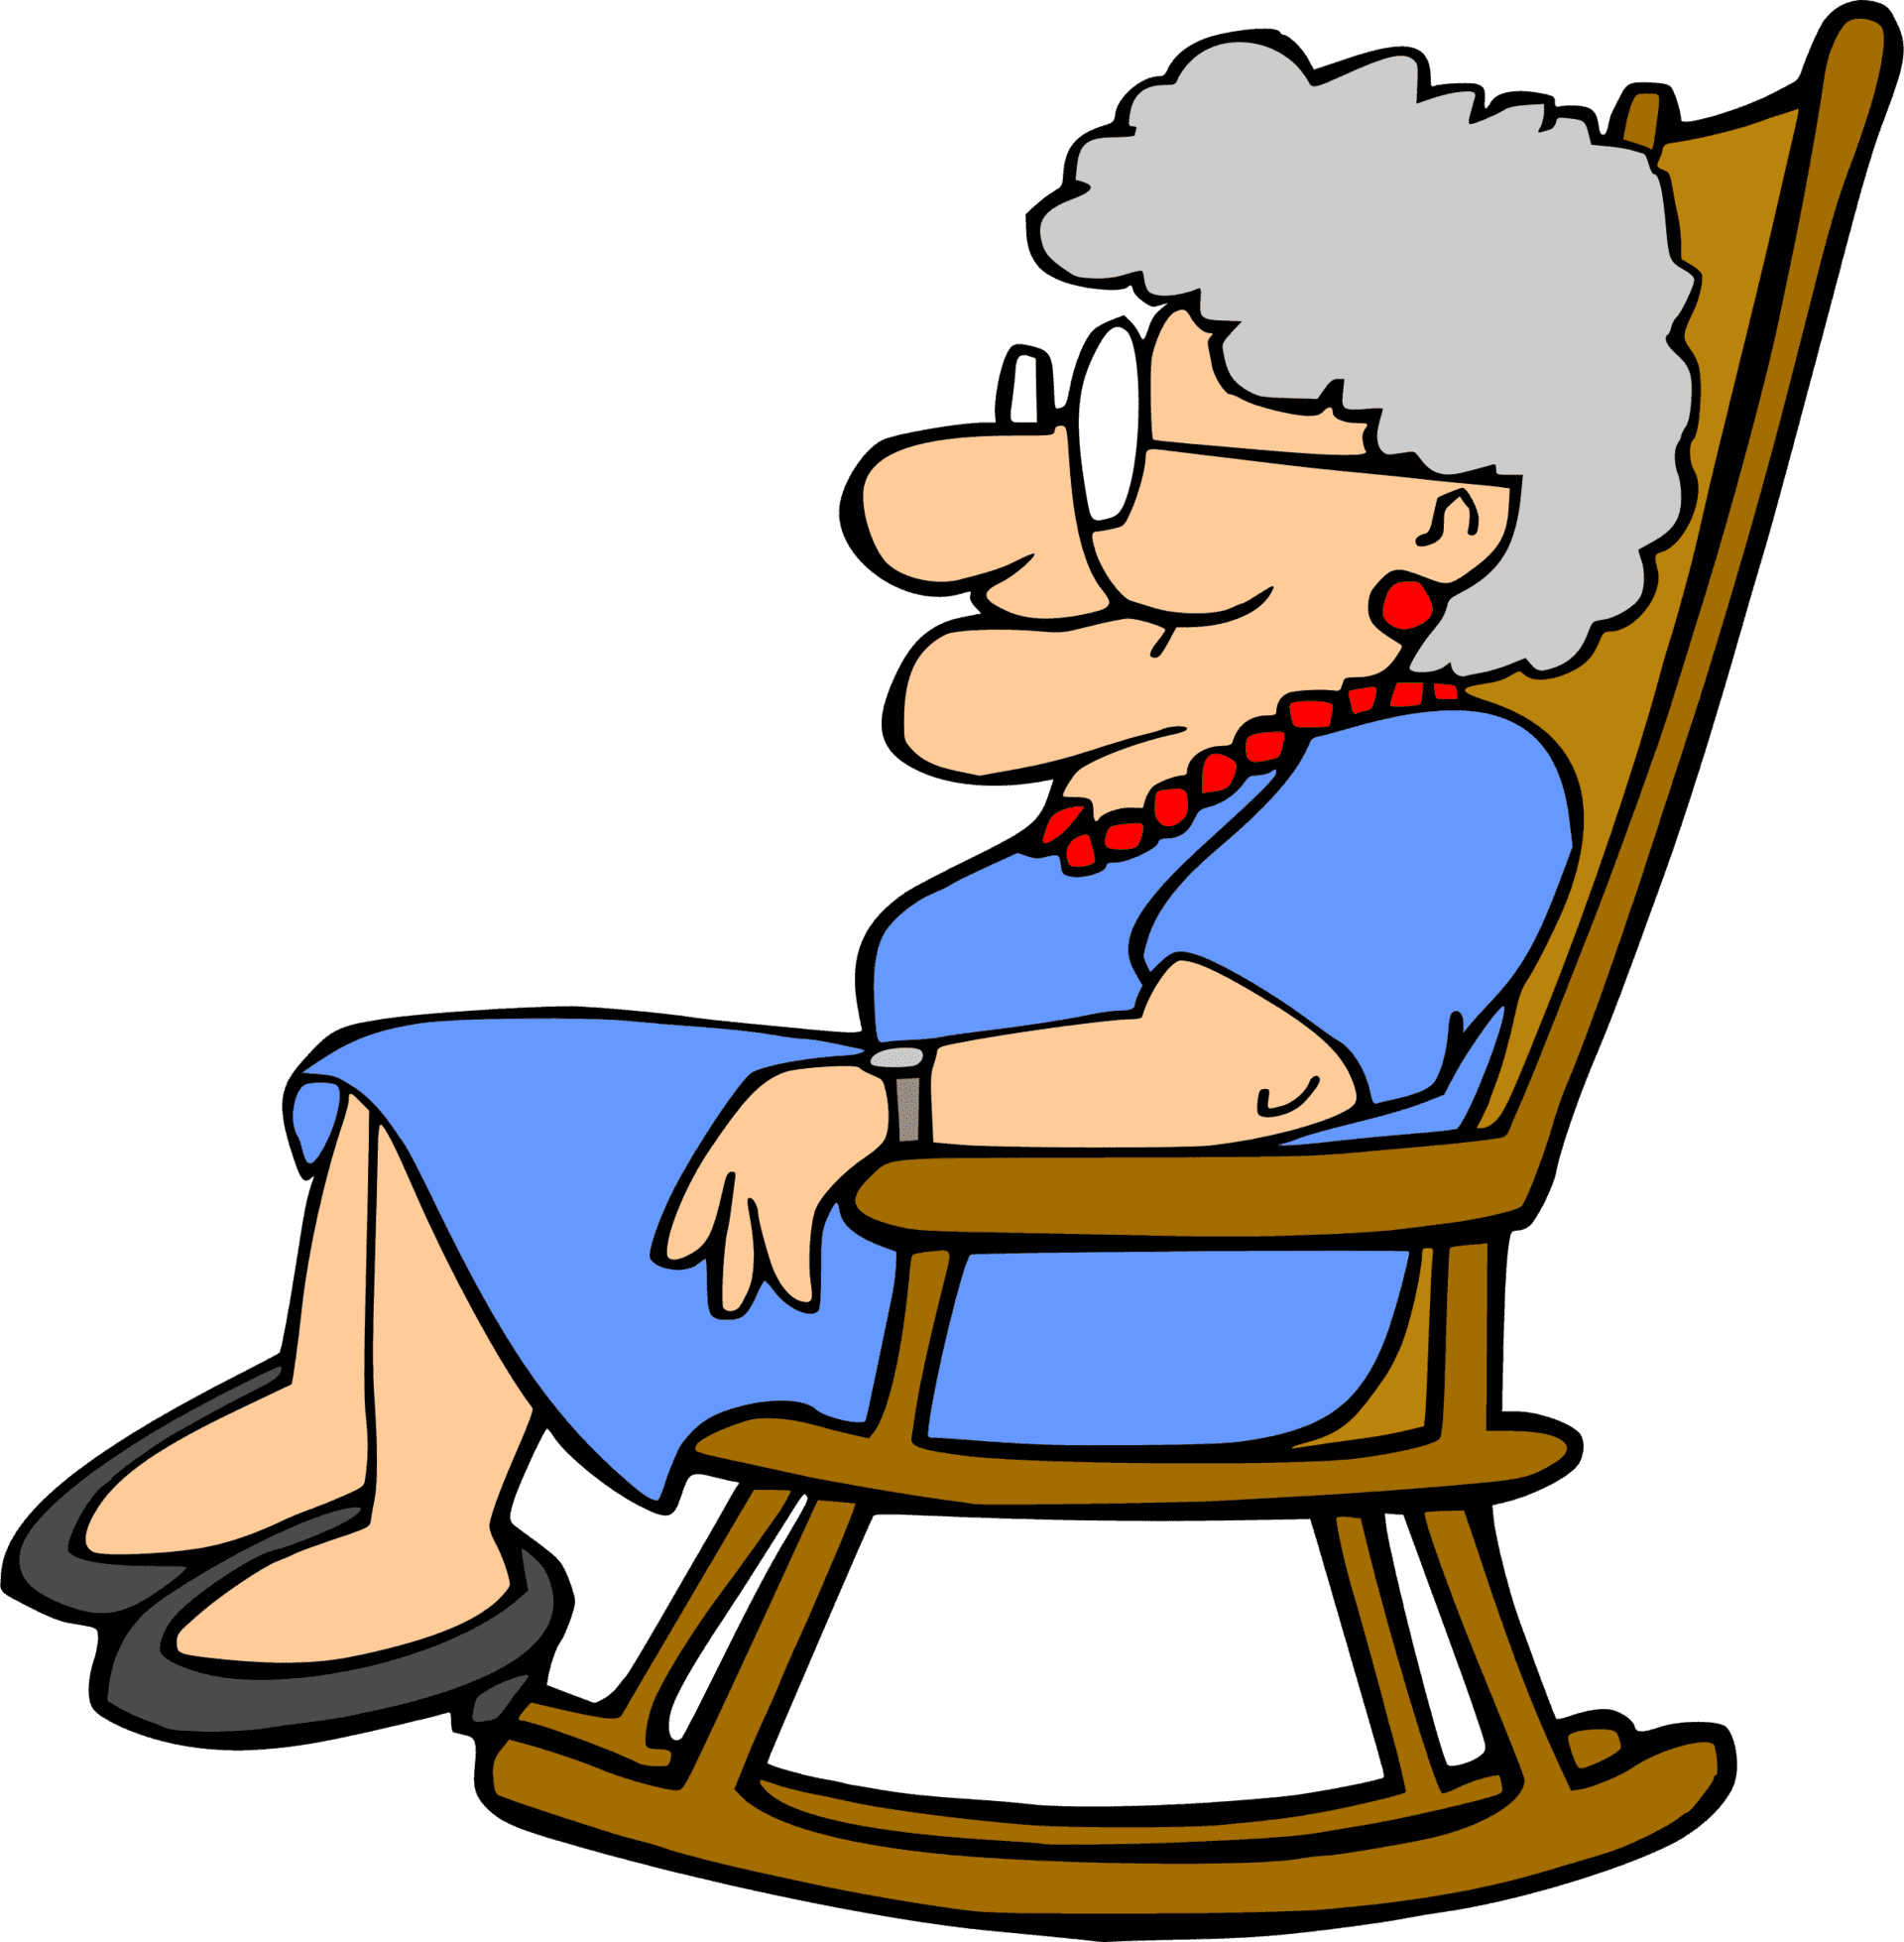 Sex offenders in nursing. Clipart sleeping grandma